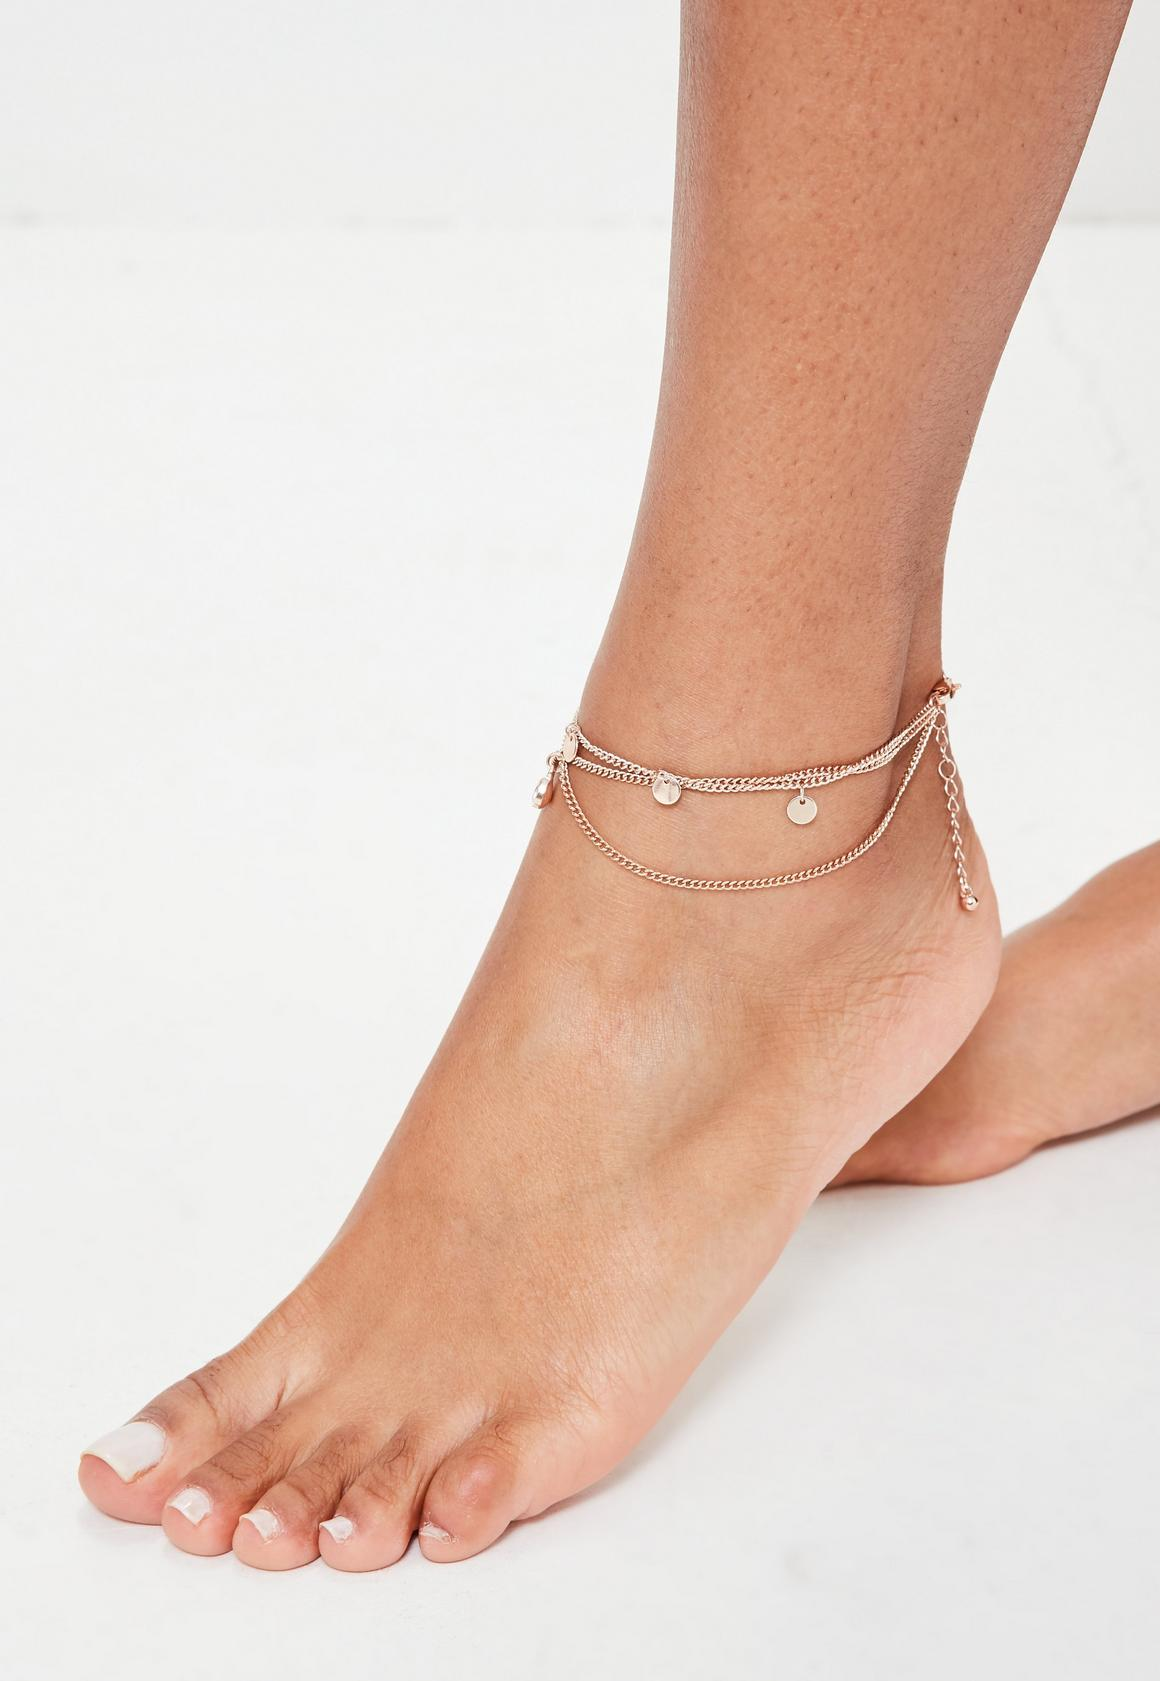 natural bohemian goods discovered a shop anklet beach pearls